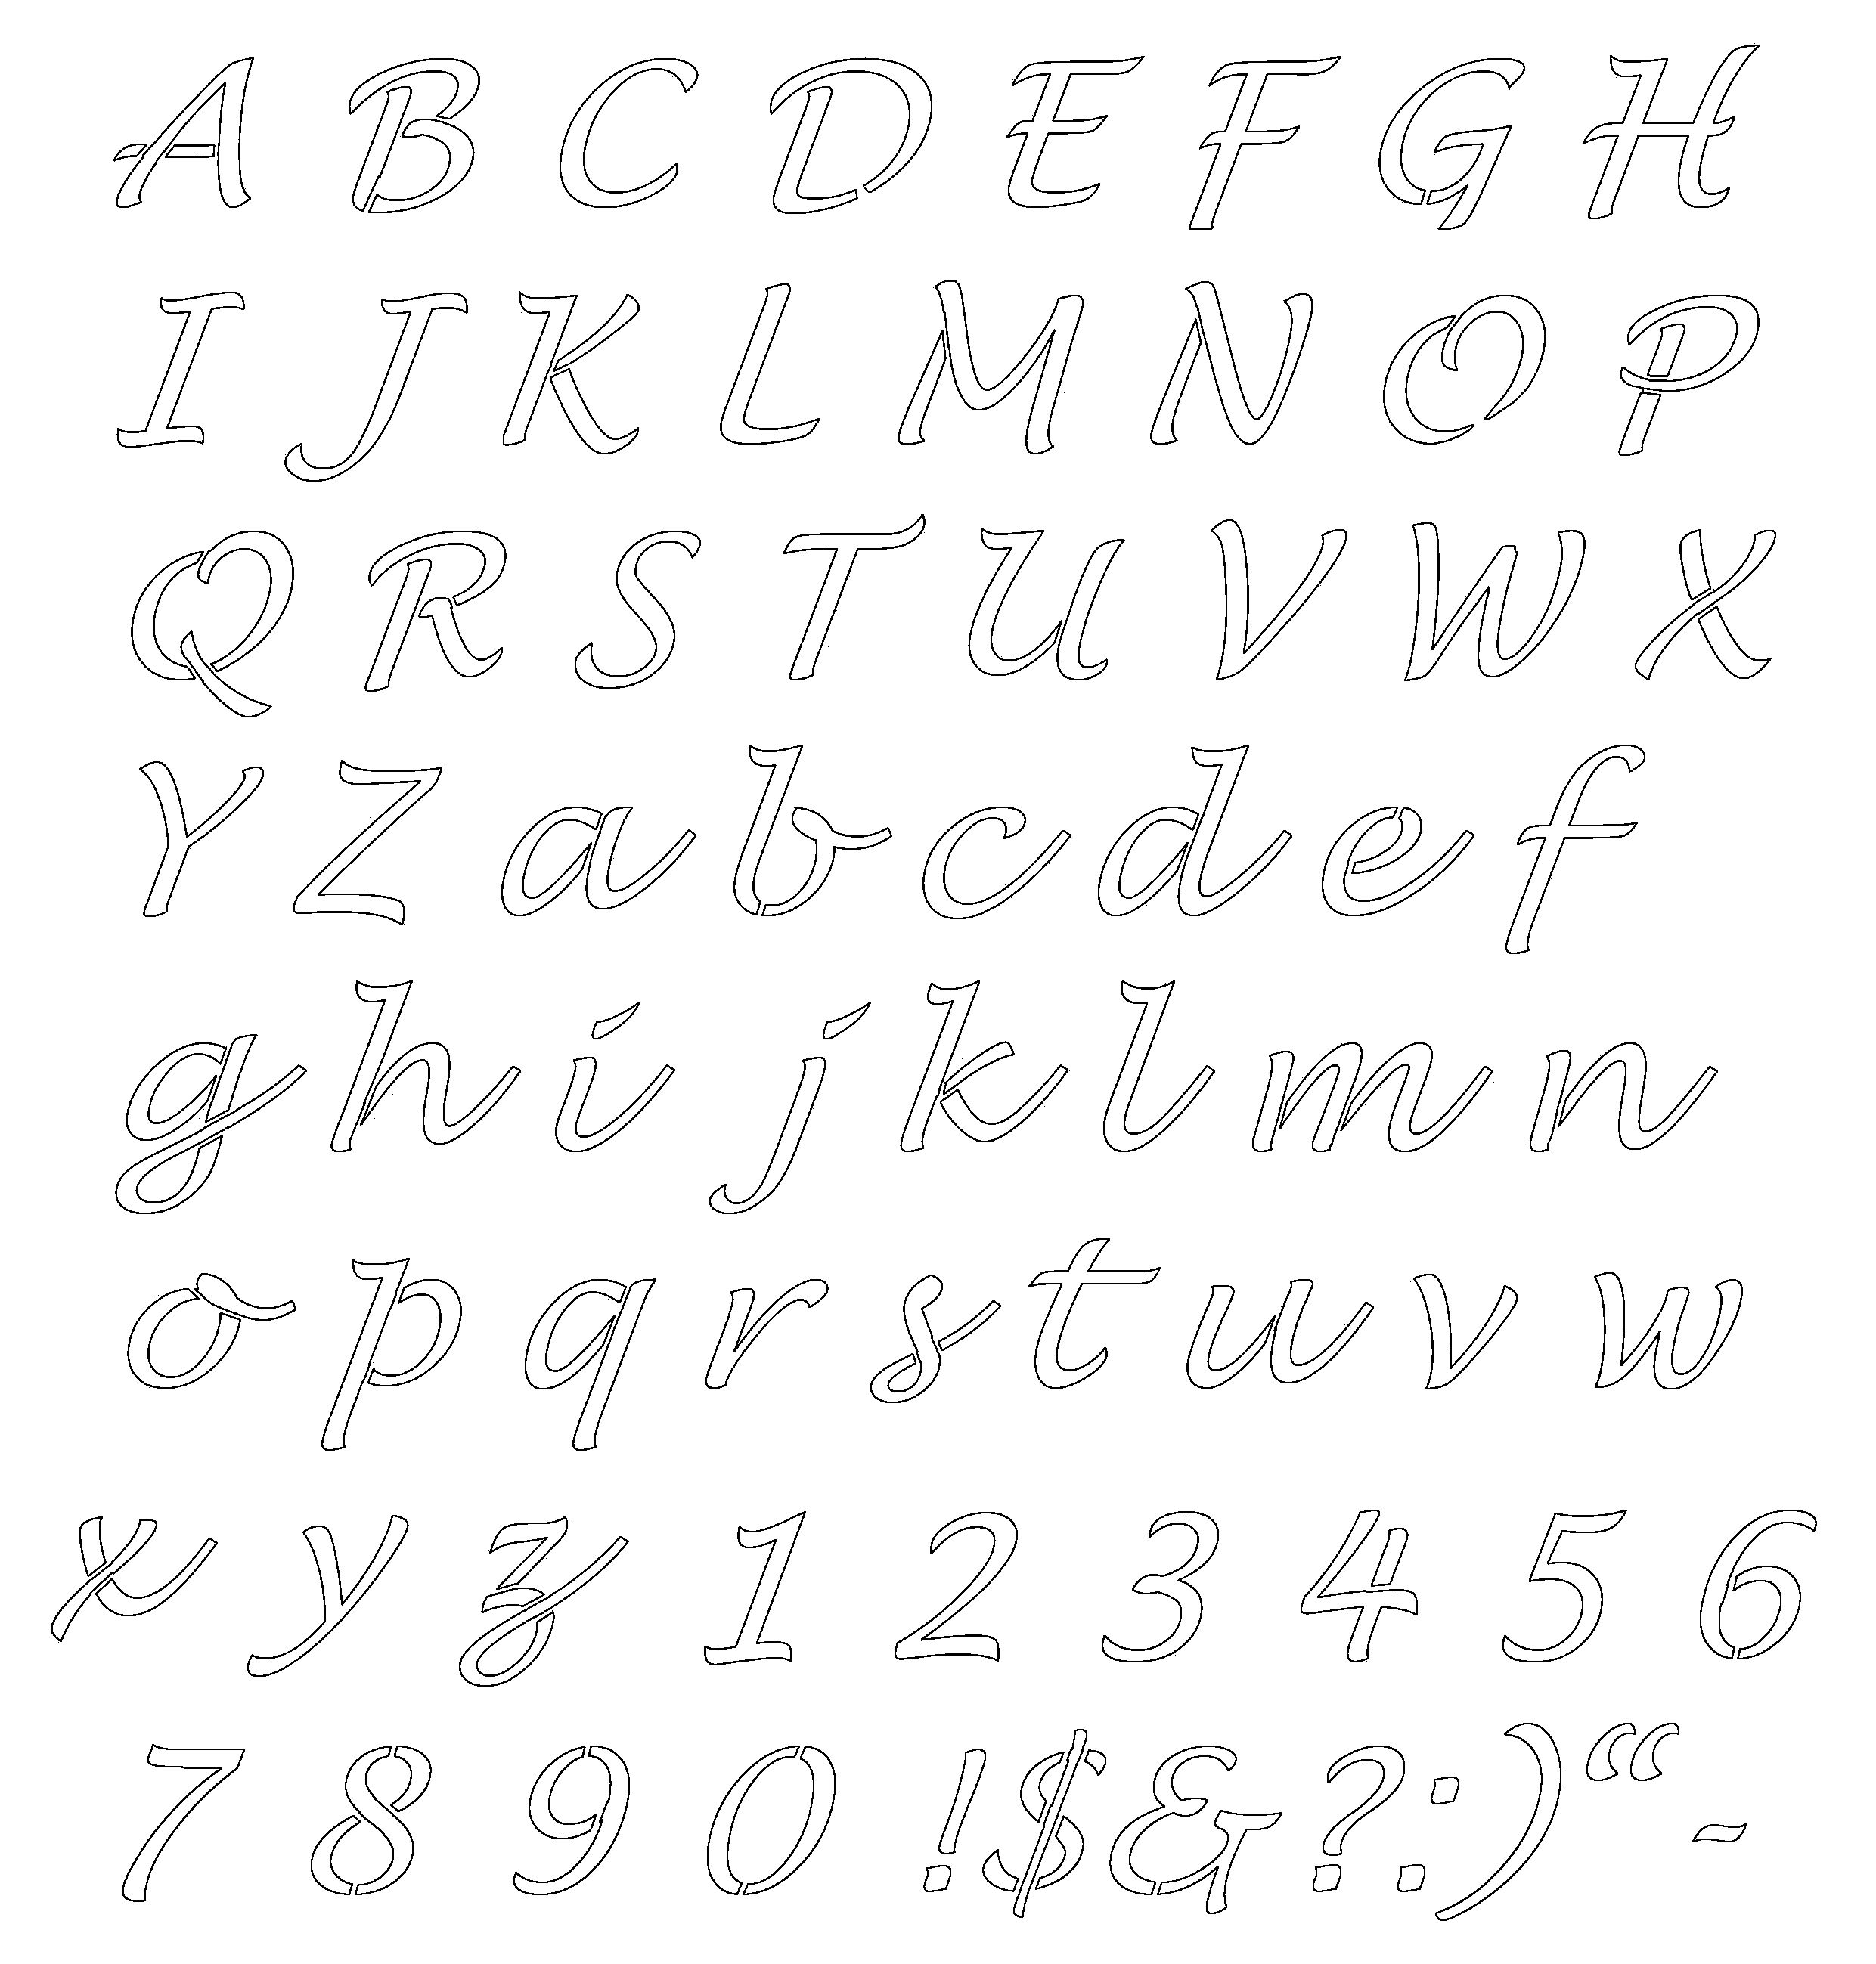 Image Result For Fancy Alphabet Letters Templates | Alphabets - Free Printable Fancy Number Stencils